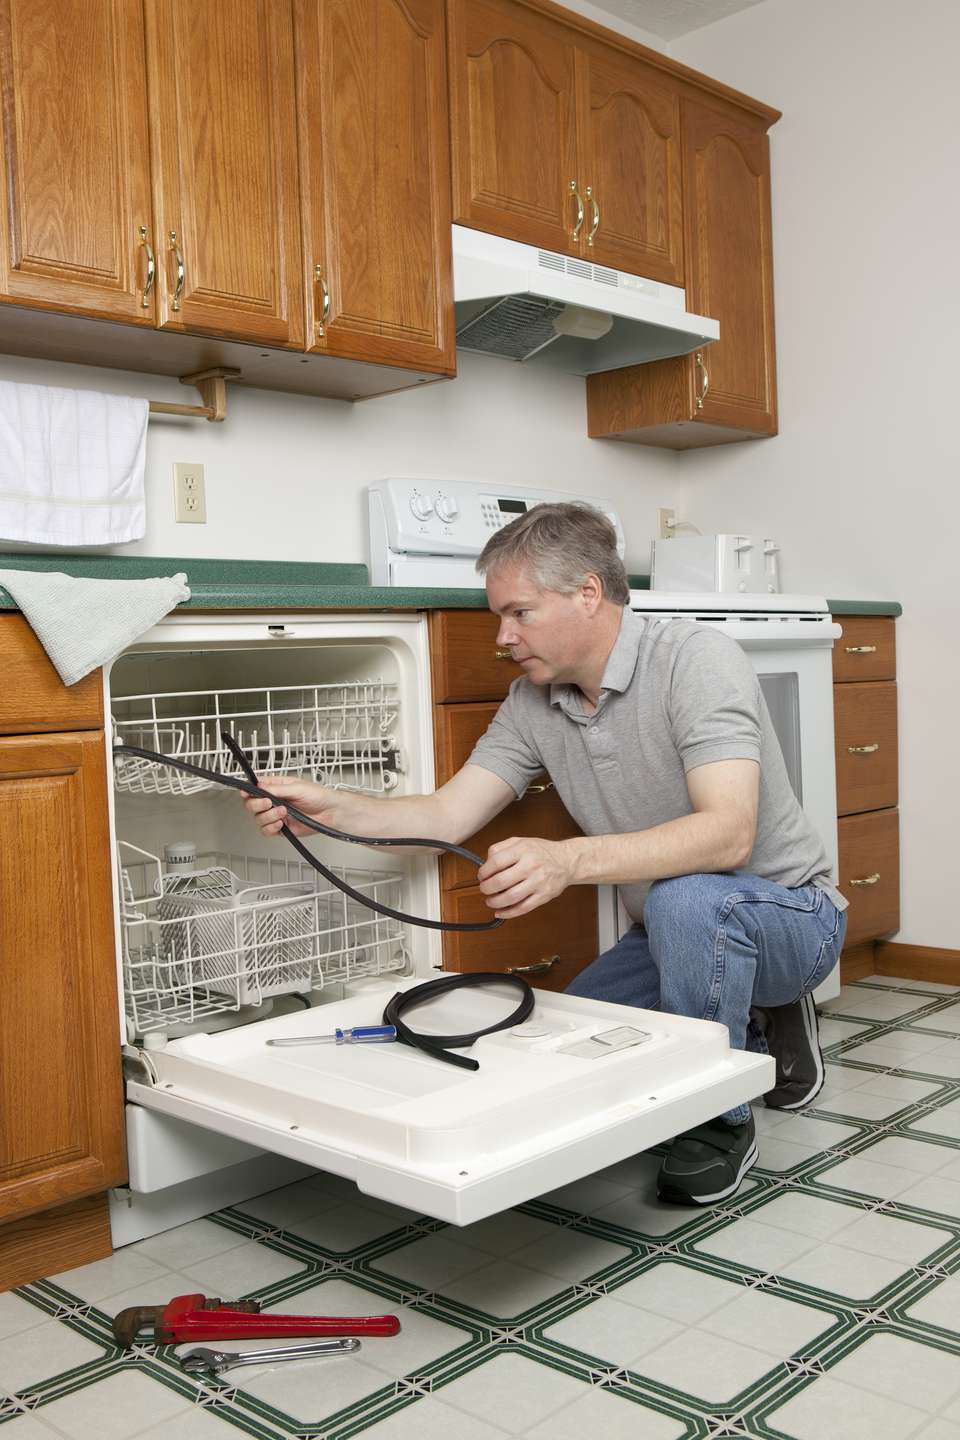 Plumber Working on Dishwasher